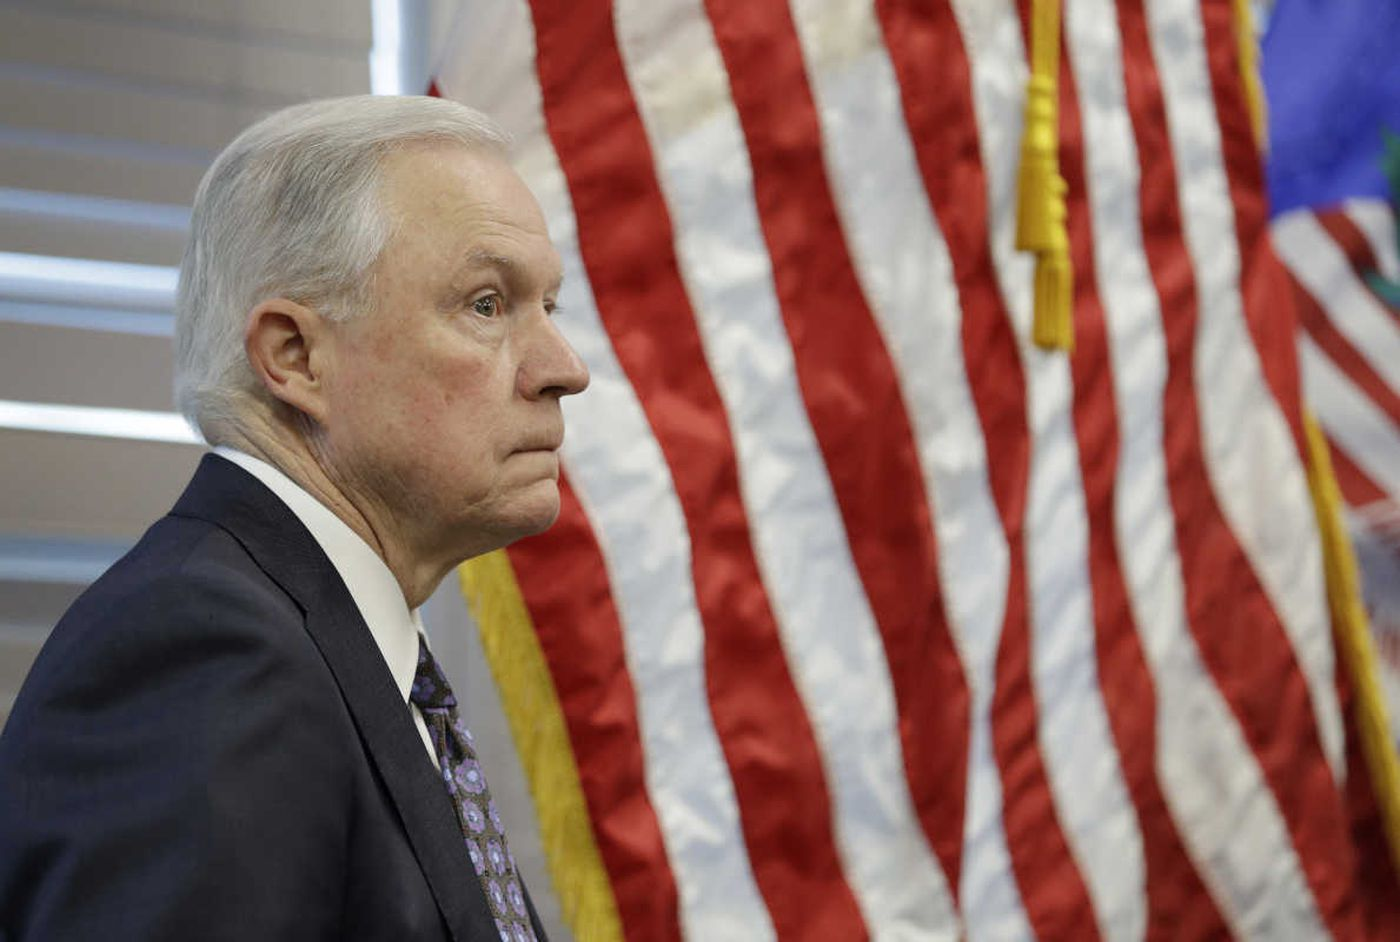 Jeff Sessions, keep serving the country and its people